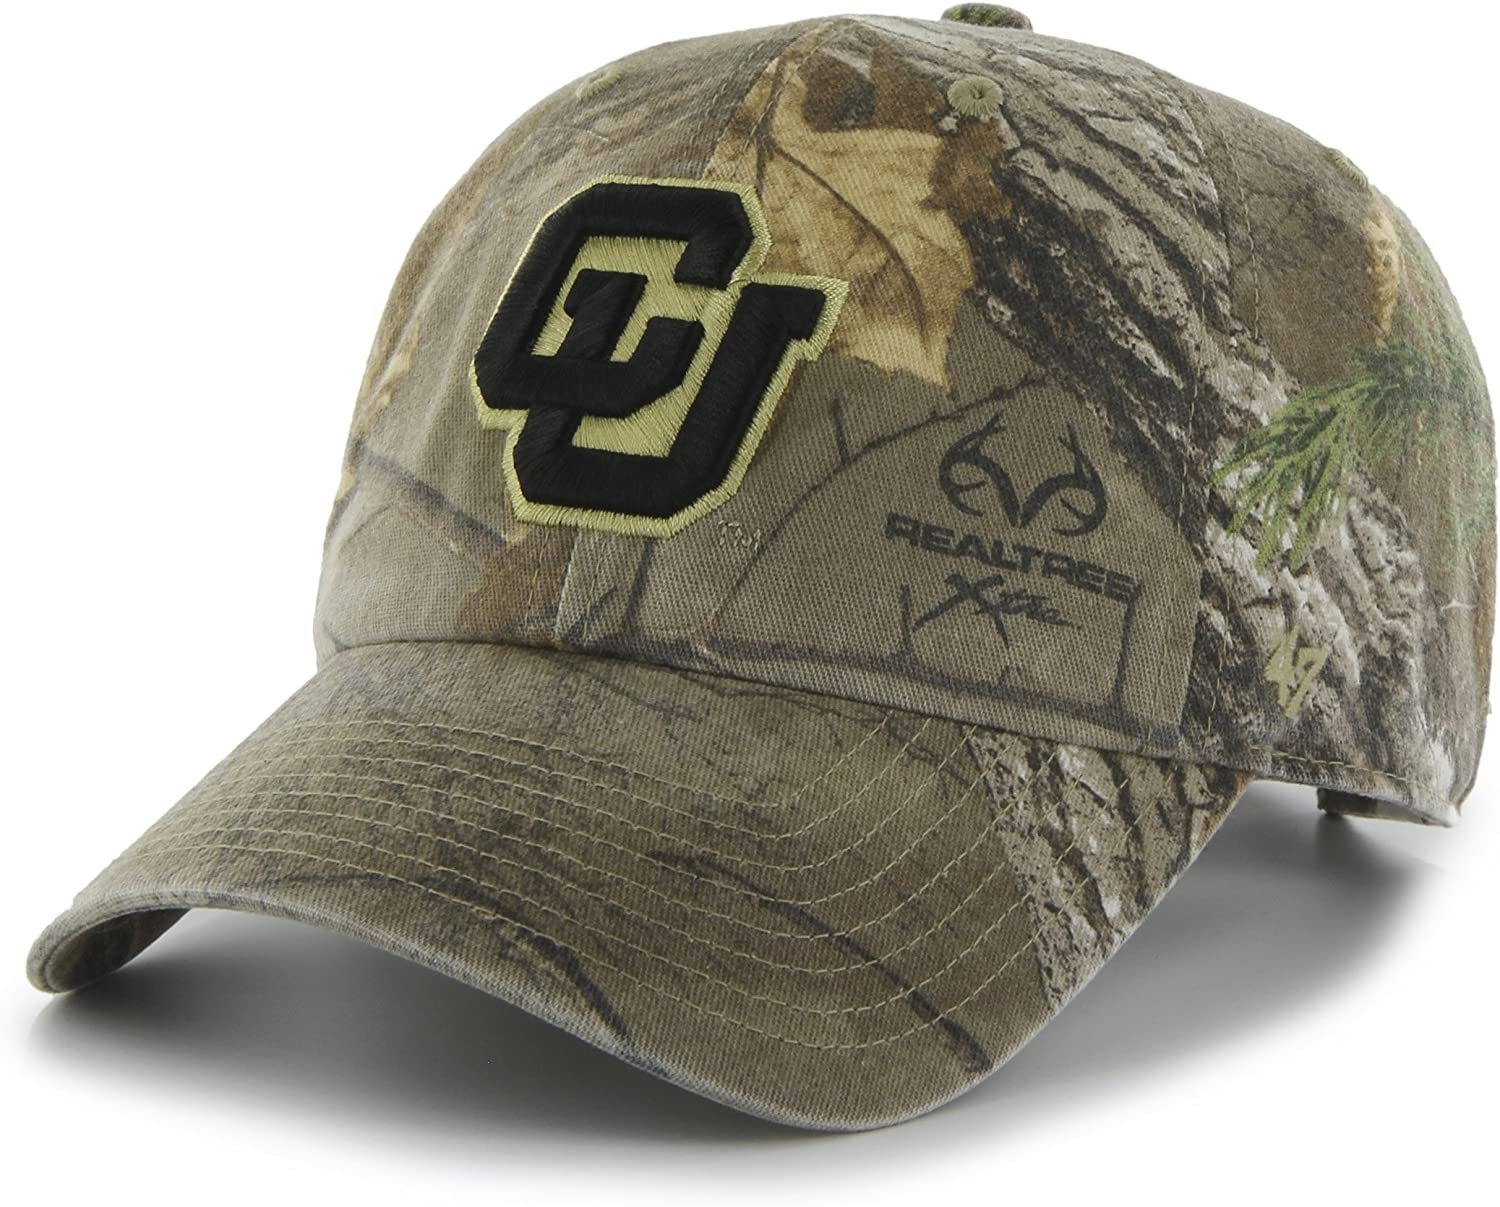 Realtree Camo 47 NCAA Colorado Buffaloes Adult Clean Up Realtree Adjustable Hat One Size